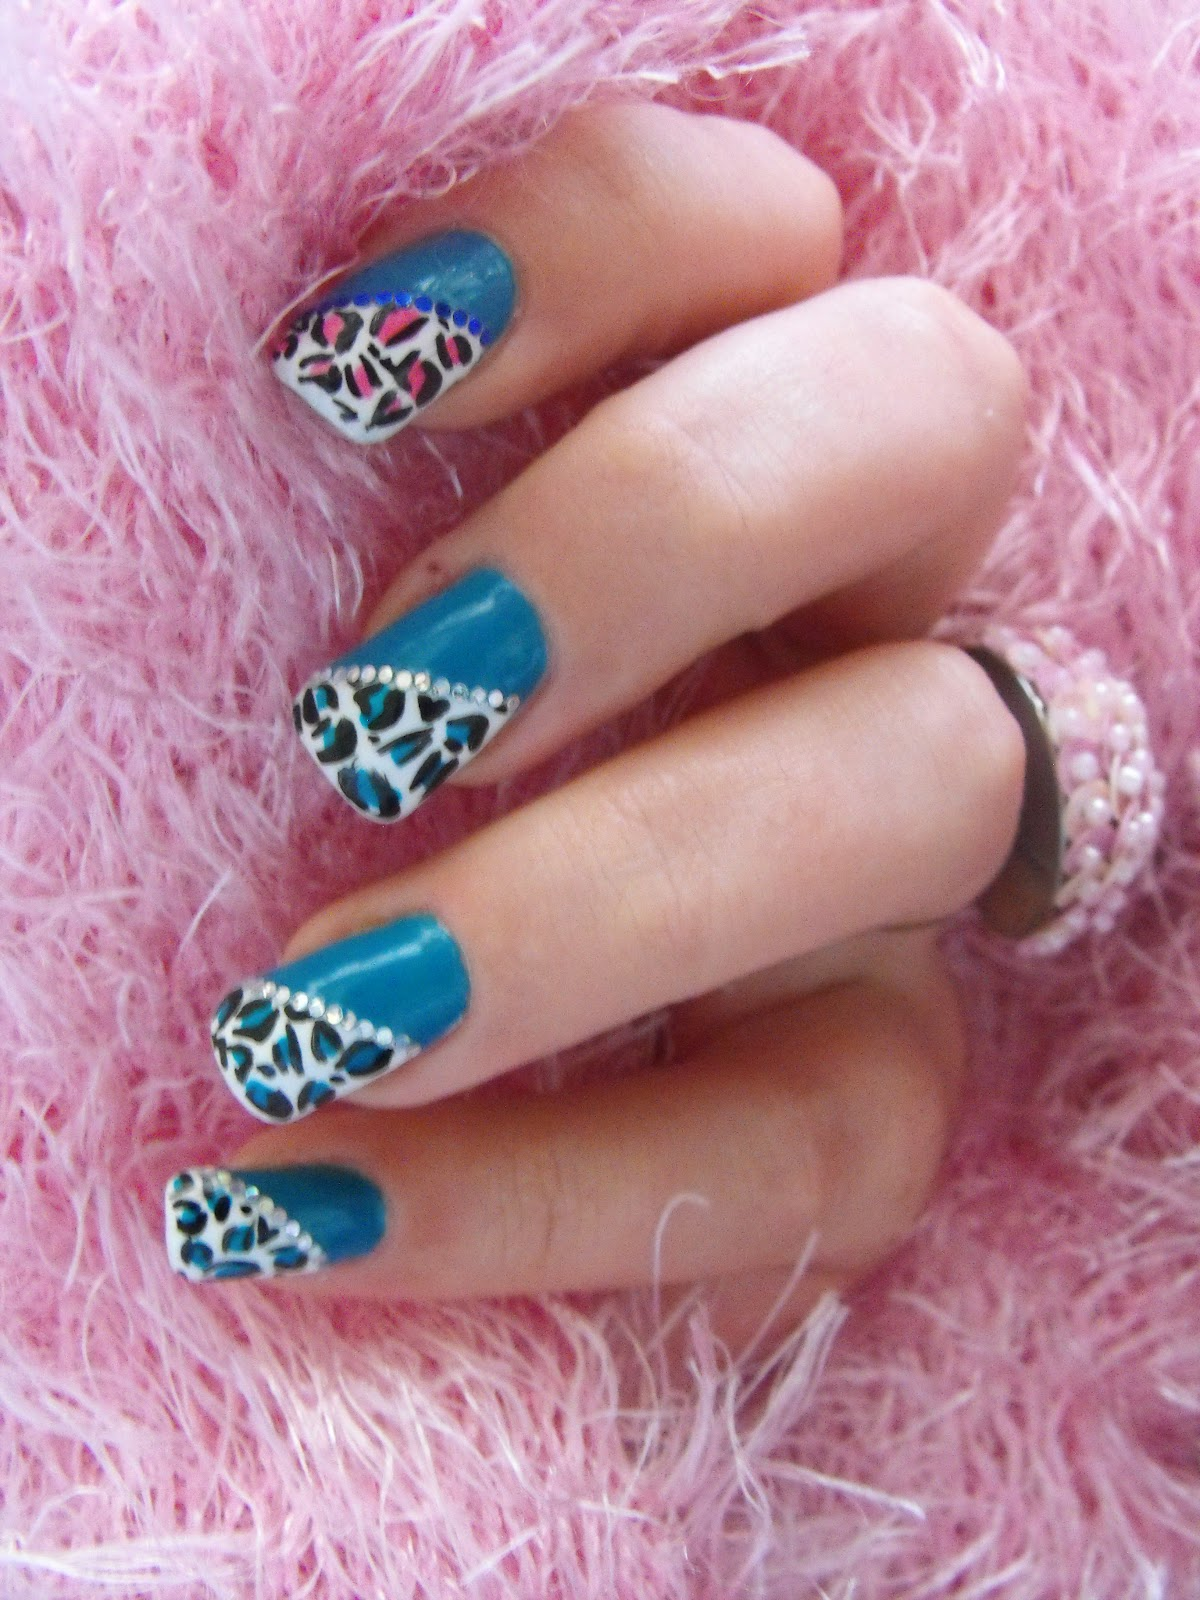 Nail Art: Nail Art Tutorial – How To Make \'Animal Print\' Nail Design